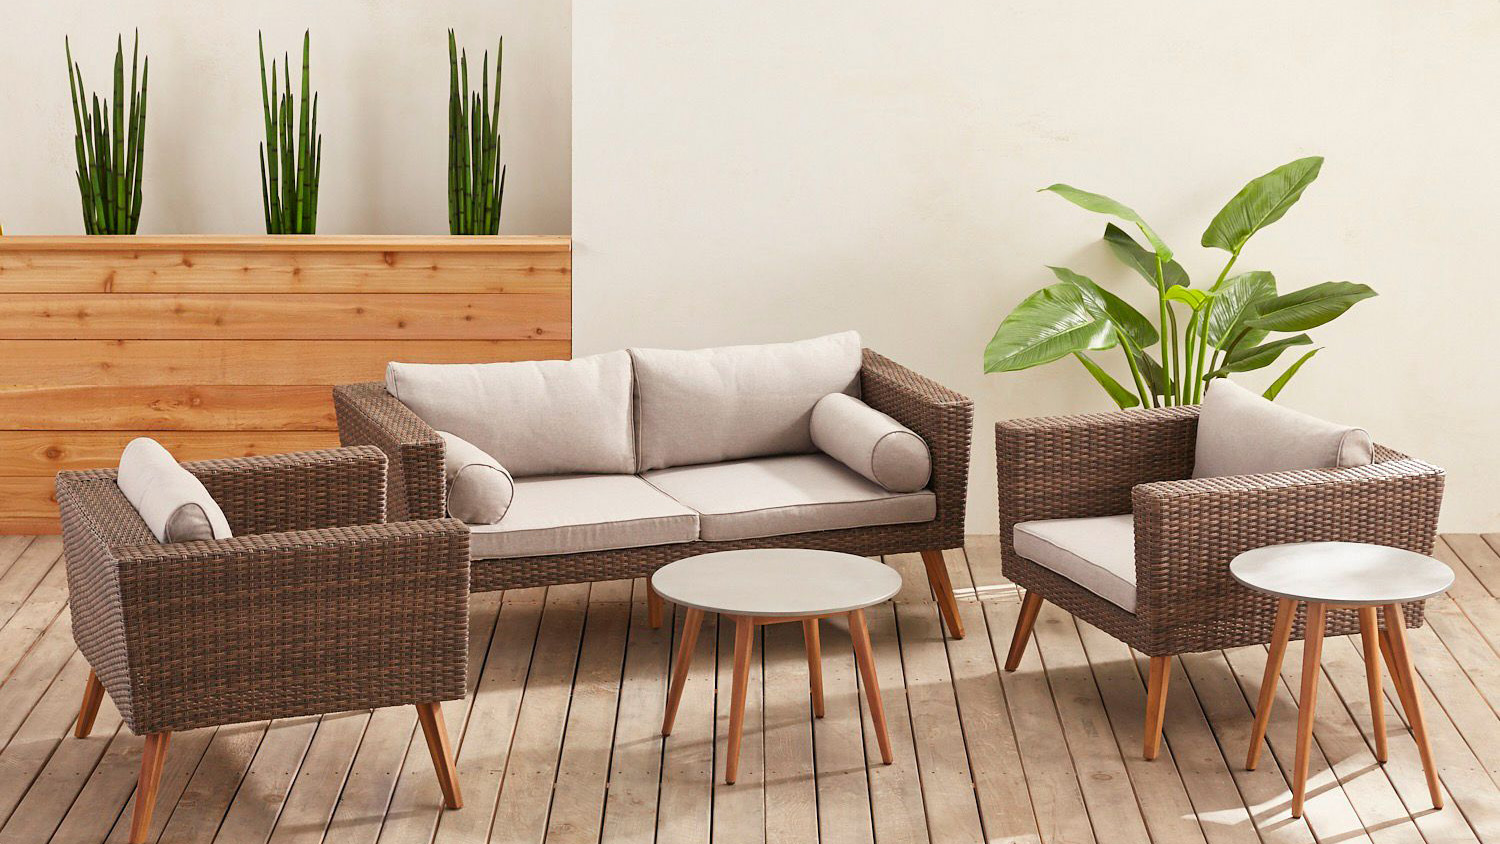 Pier 1 Accent Chairs Off White.The Affordable Outdoor Furniture You Need To Transform Your Space